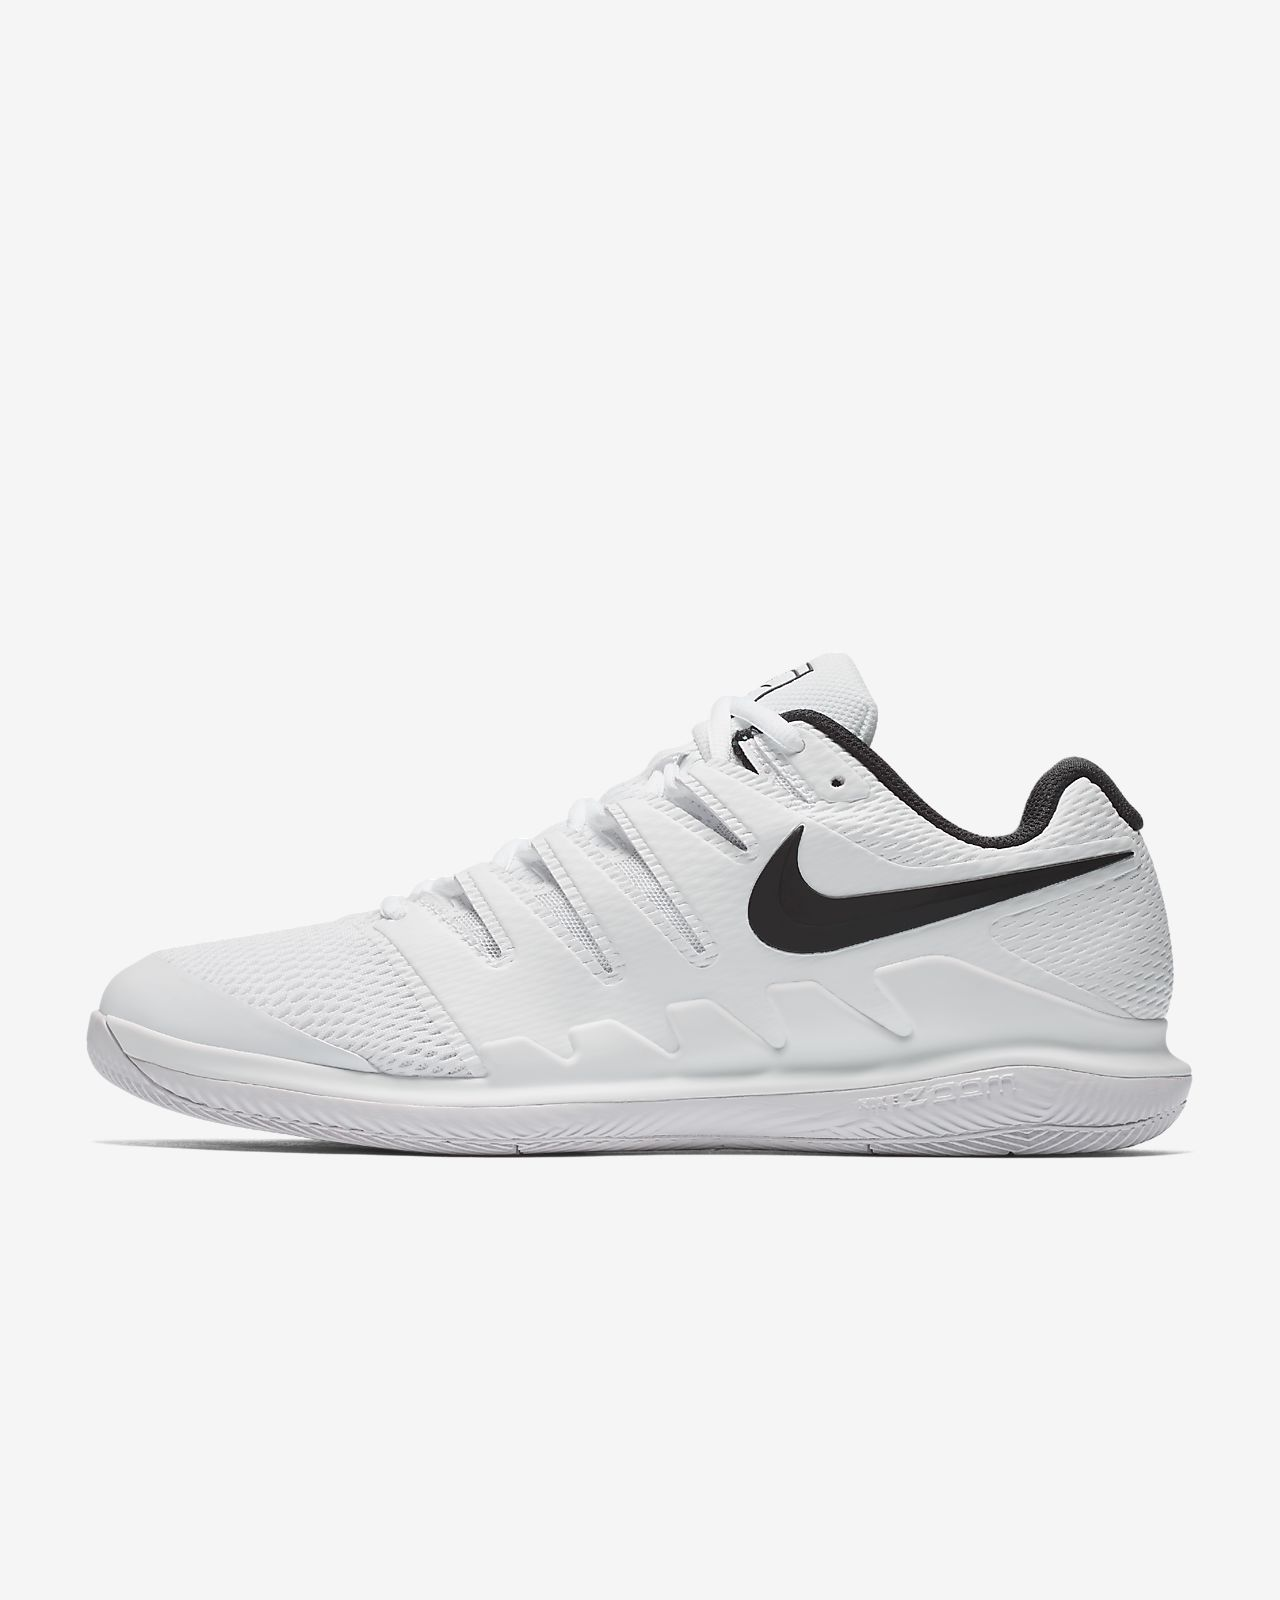 Nike Air Zoom Vapor X HC Men's Tennis Shoe